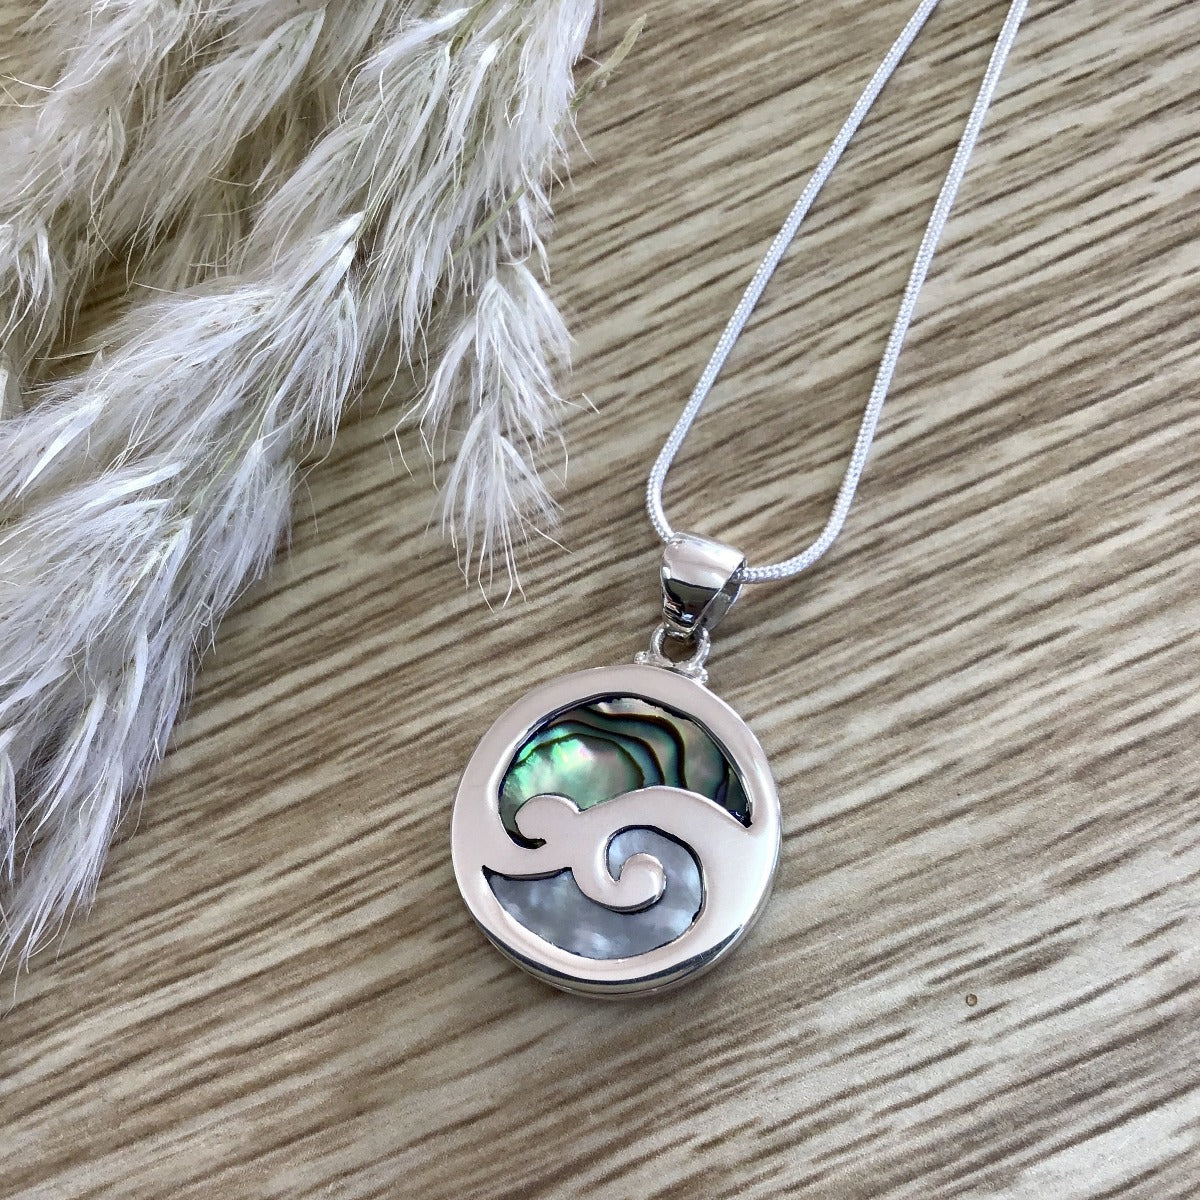 jade kiwi kaikoura sterling silver necklace pendant mother of pearl paua shell